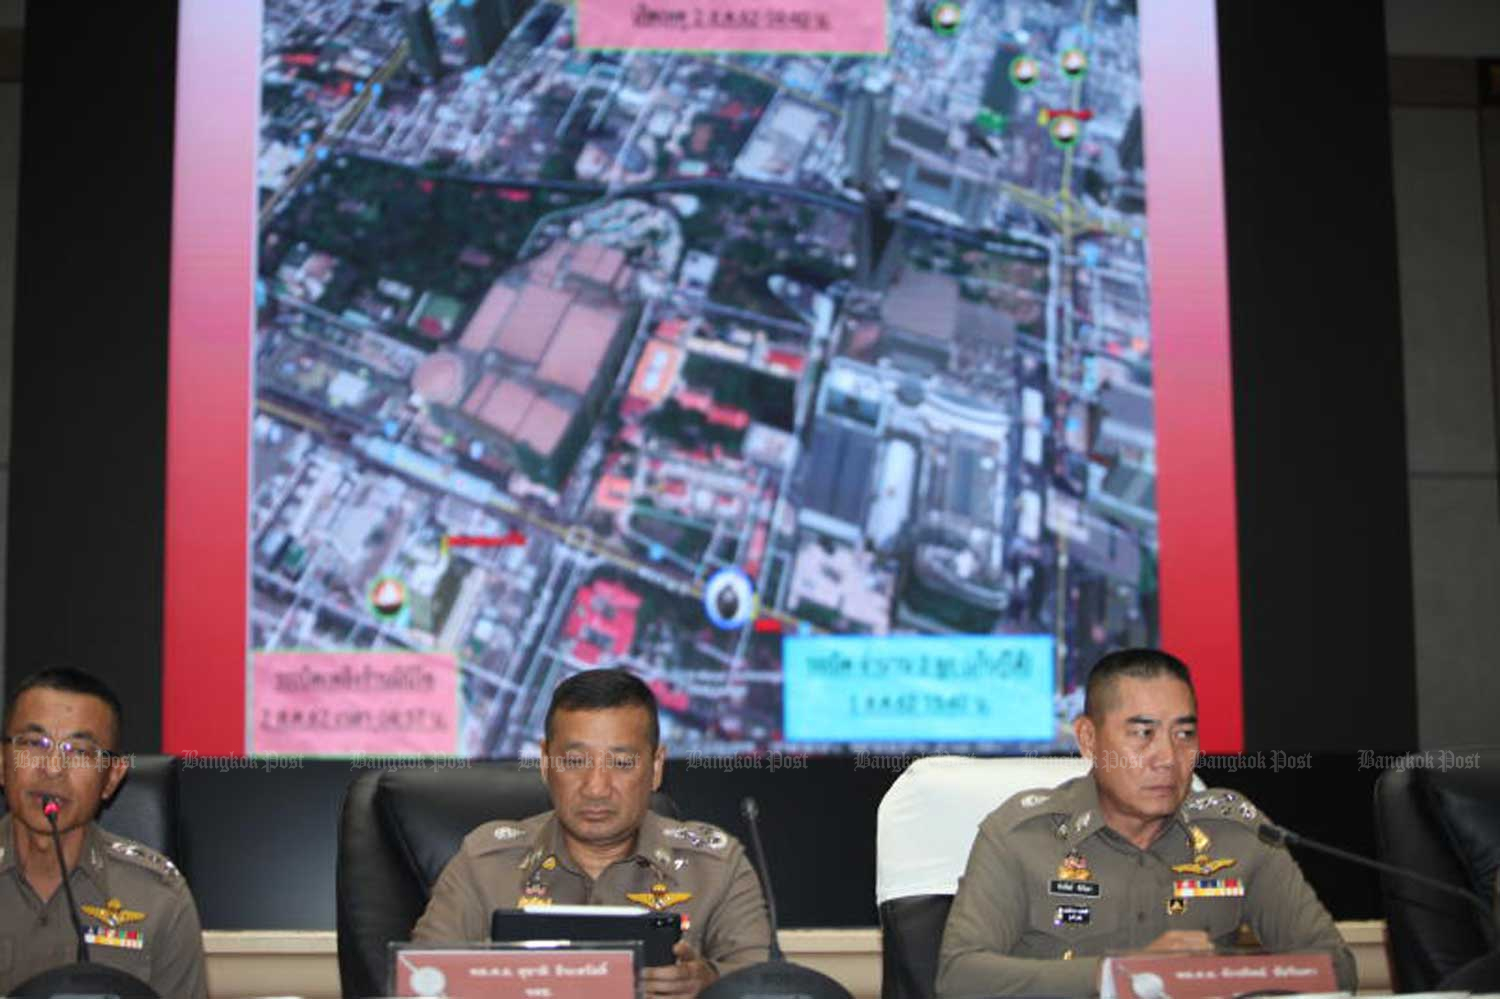 A poster featuring photos and details of suspects in bombing attacks in Bangkok and Nonthaburi early this month is seen at a press conference called last Thursday to present the police's findings in the case to the public. (Photo by Apichart Jinakul)